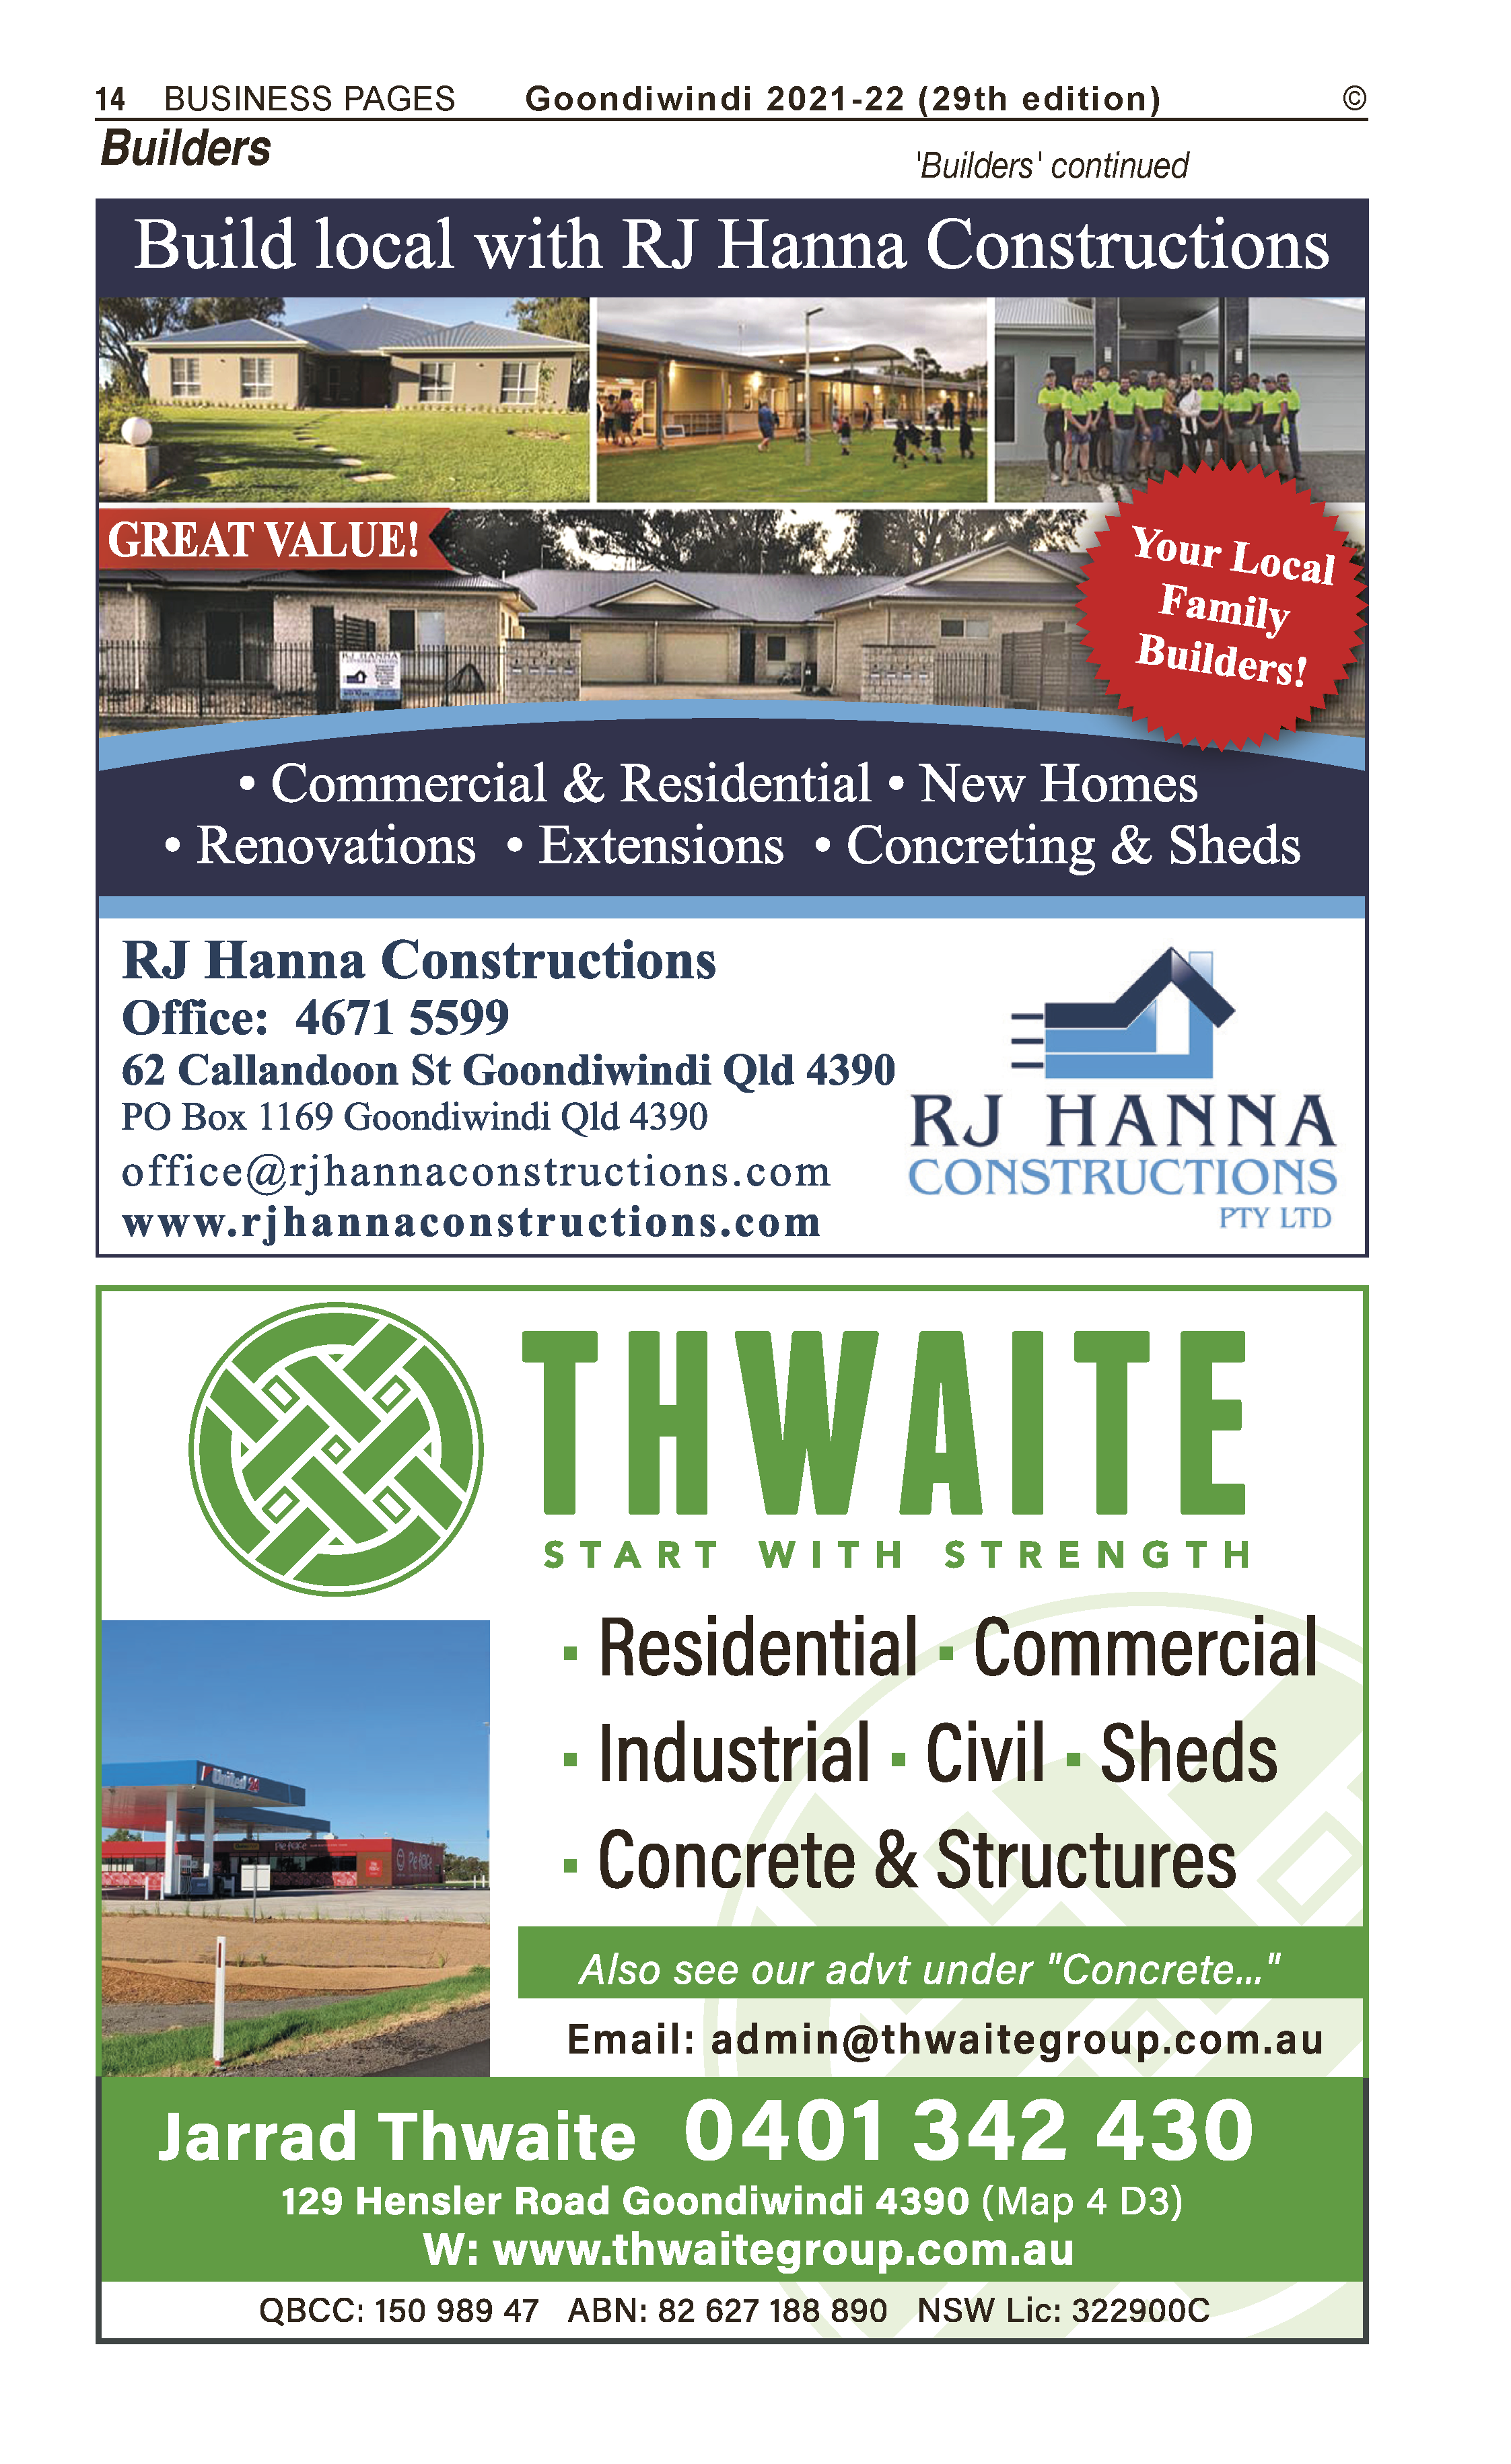 Cash For Property in 14 Days in Goondiwindi QLD - page 14